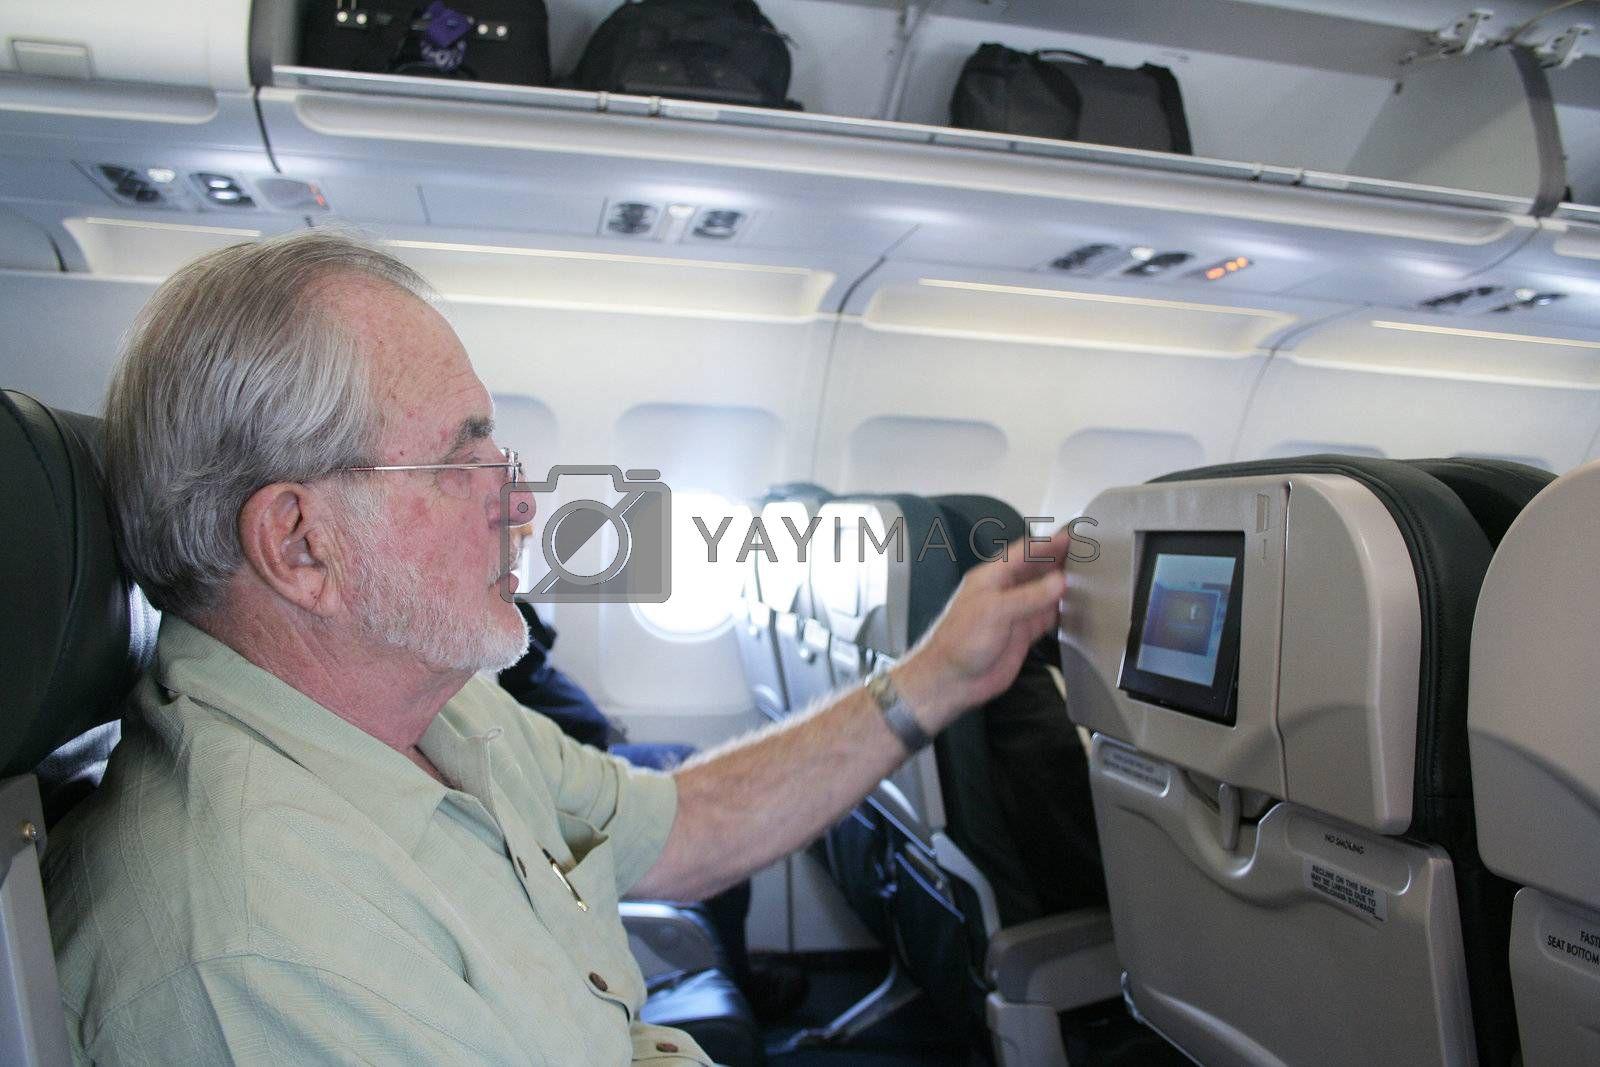 Man on airplane looking at inflight tv